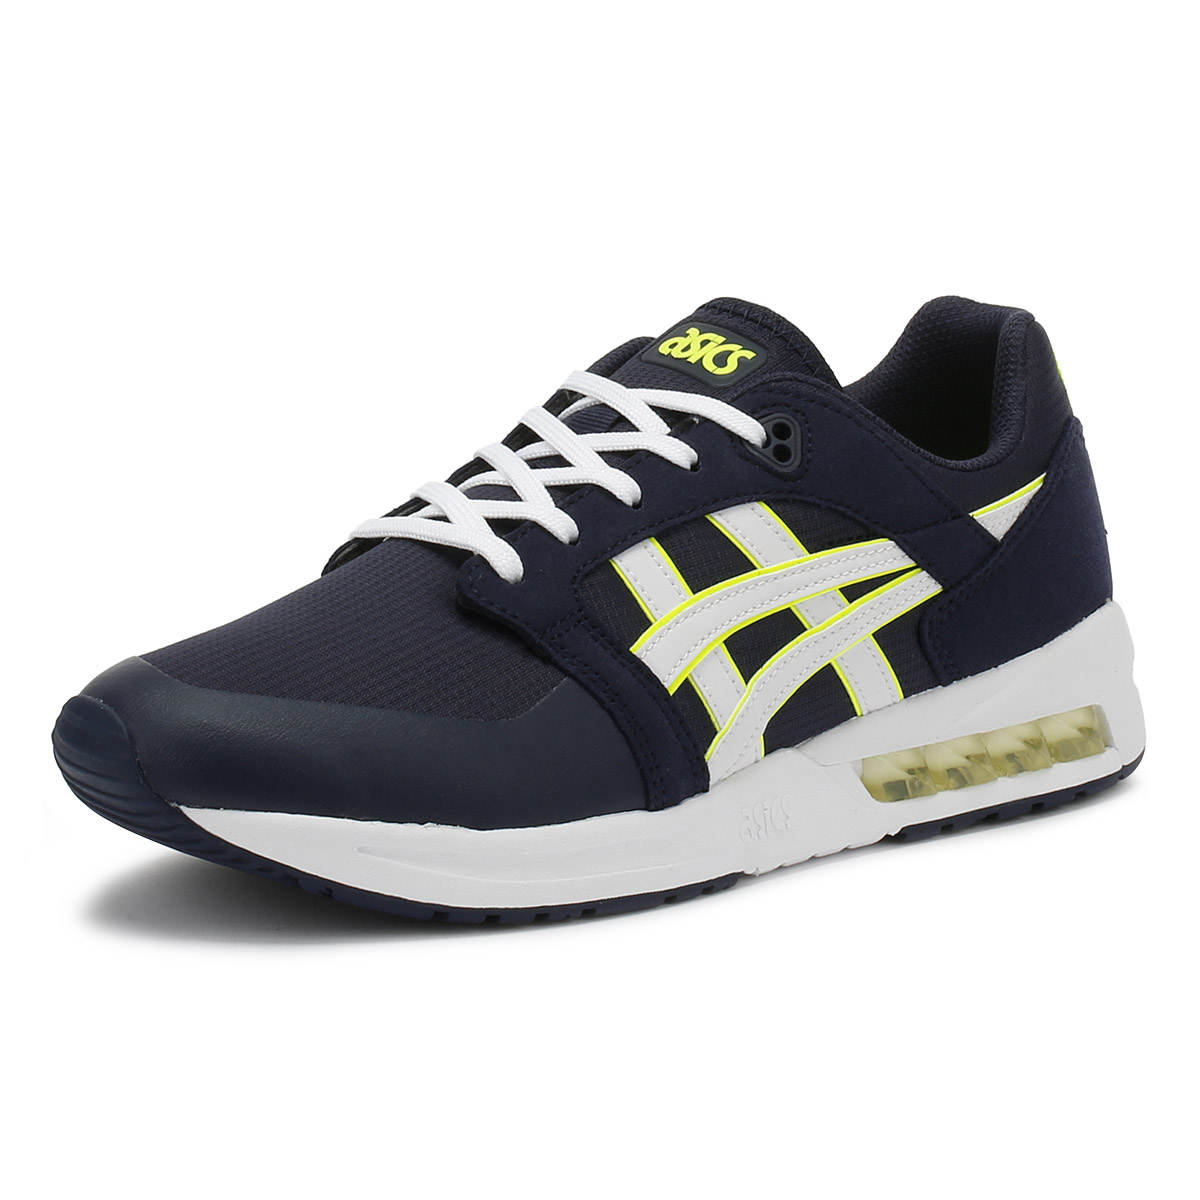 hot sale online 4371b 1b84b Details about ASICS Gel-Saga SOU Mens Midnight & White Trainers Lace Up  Casual Shoes